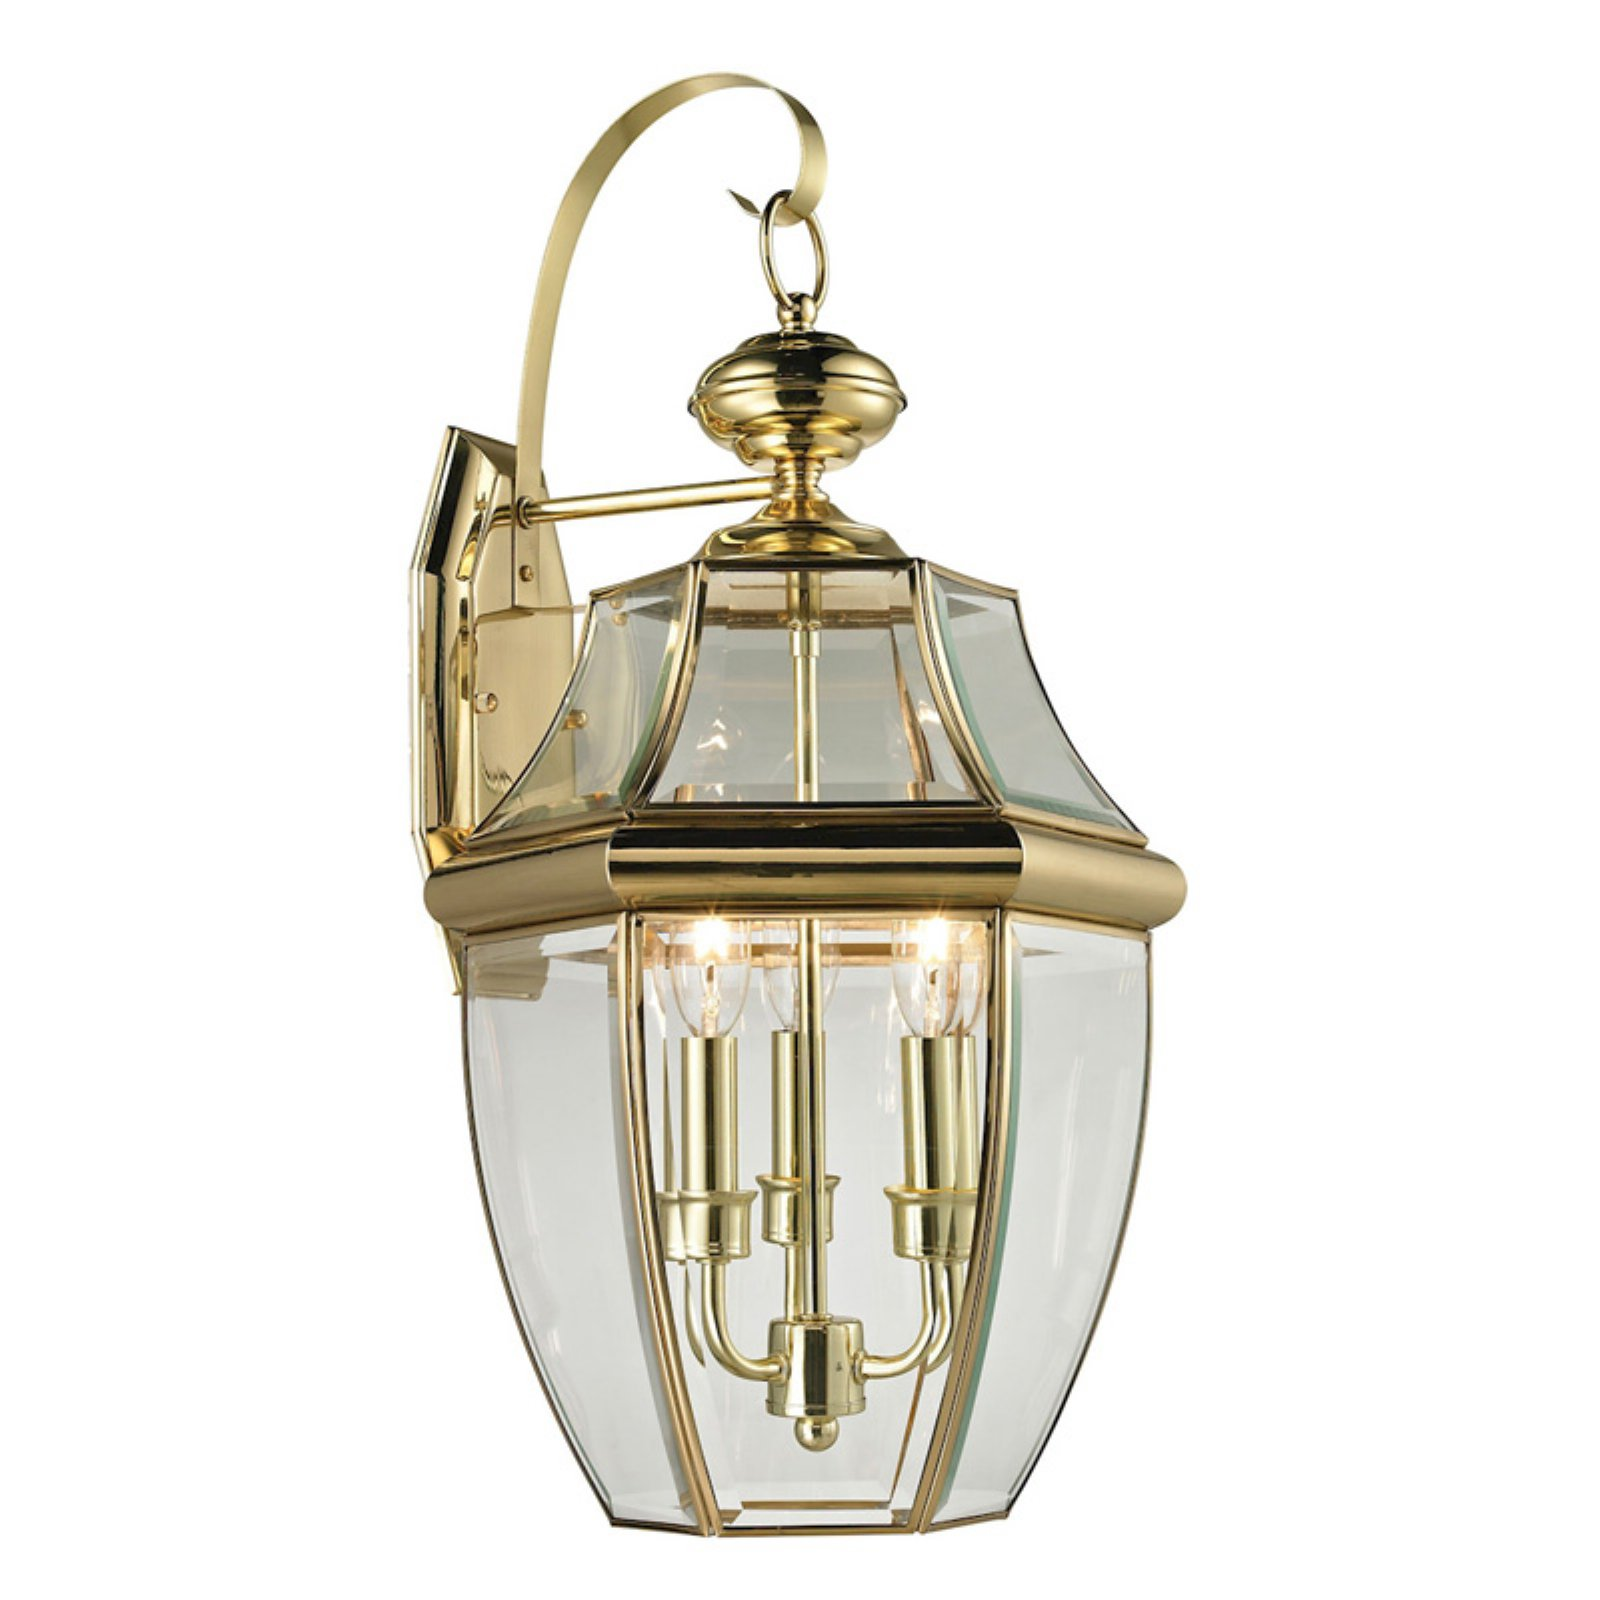 Thomas Lighting Ashford 8603 Armed Outdoor Wall Sconce